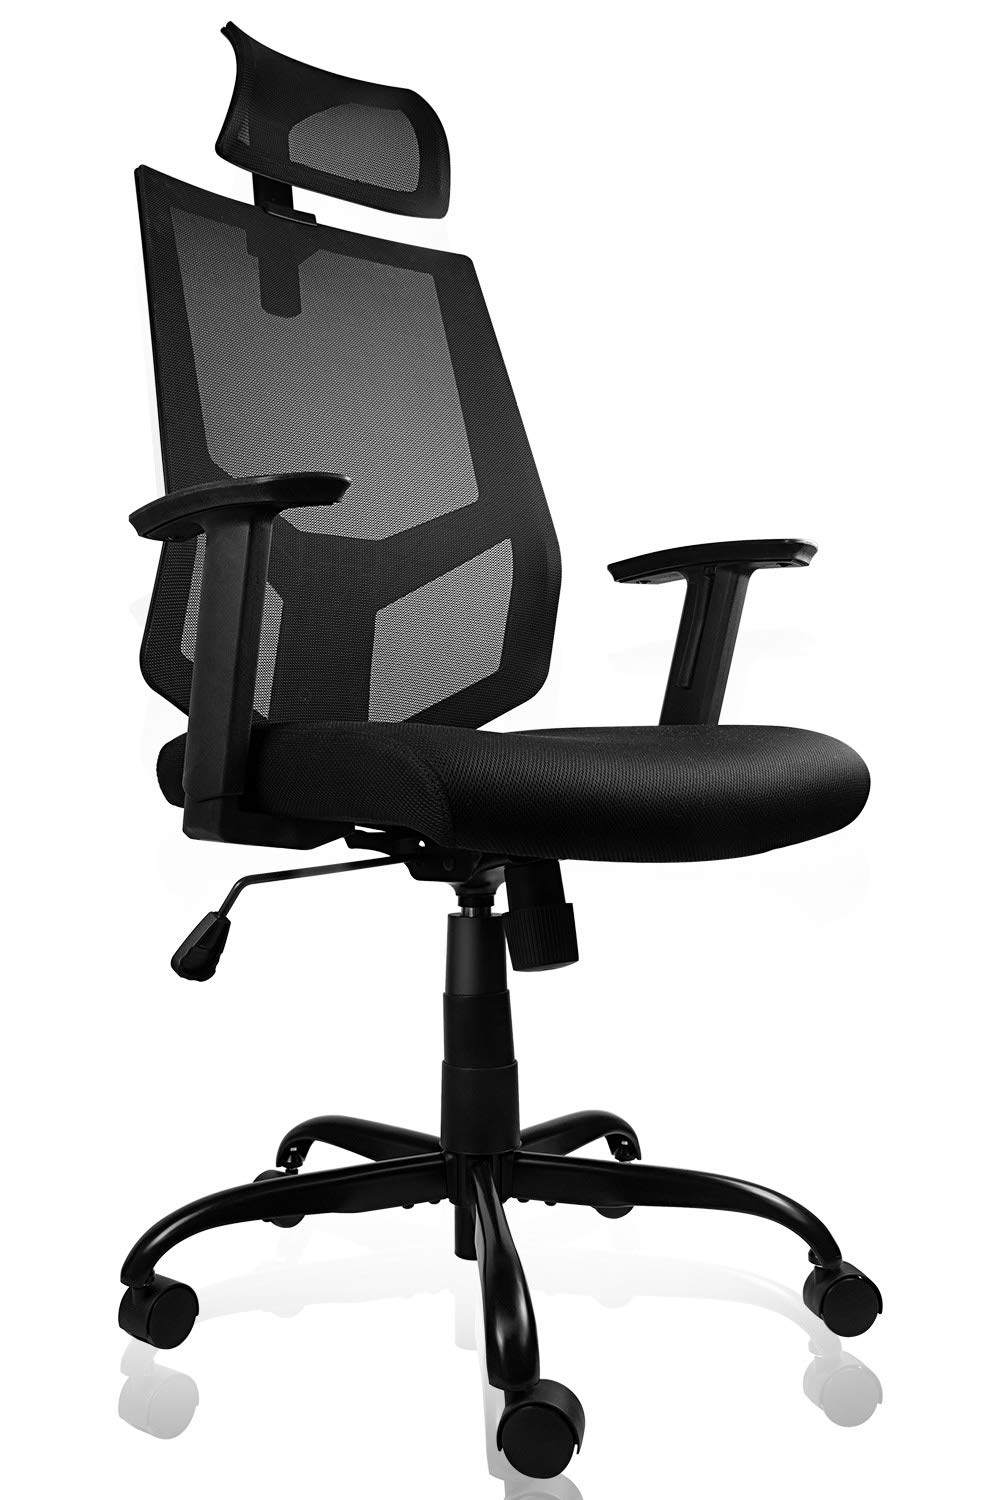 Ergonomic Office Chair Adjustable Headrest Mesh Office Chair Office Desk Chair Computer Task Chair by SMUGDESK